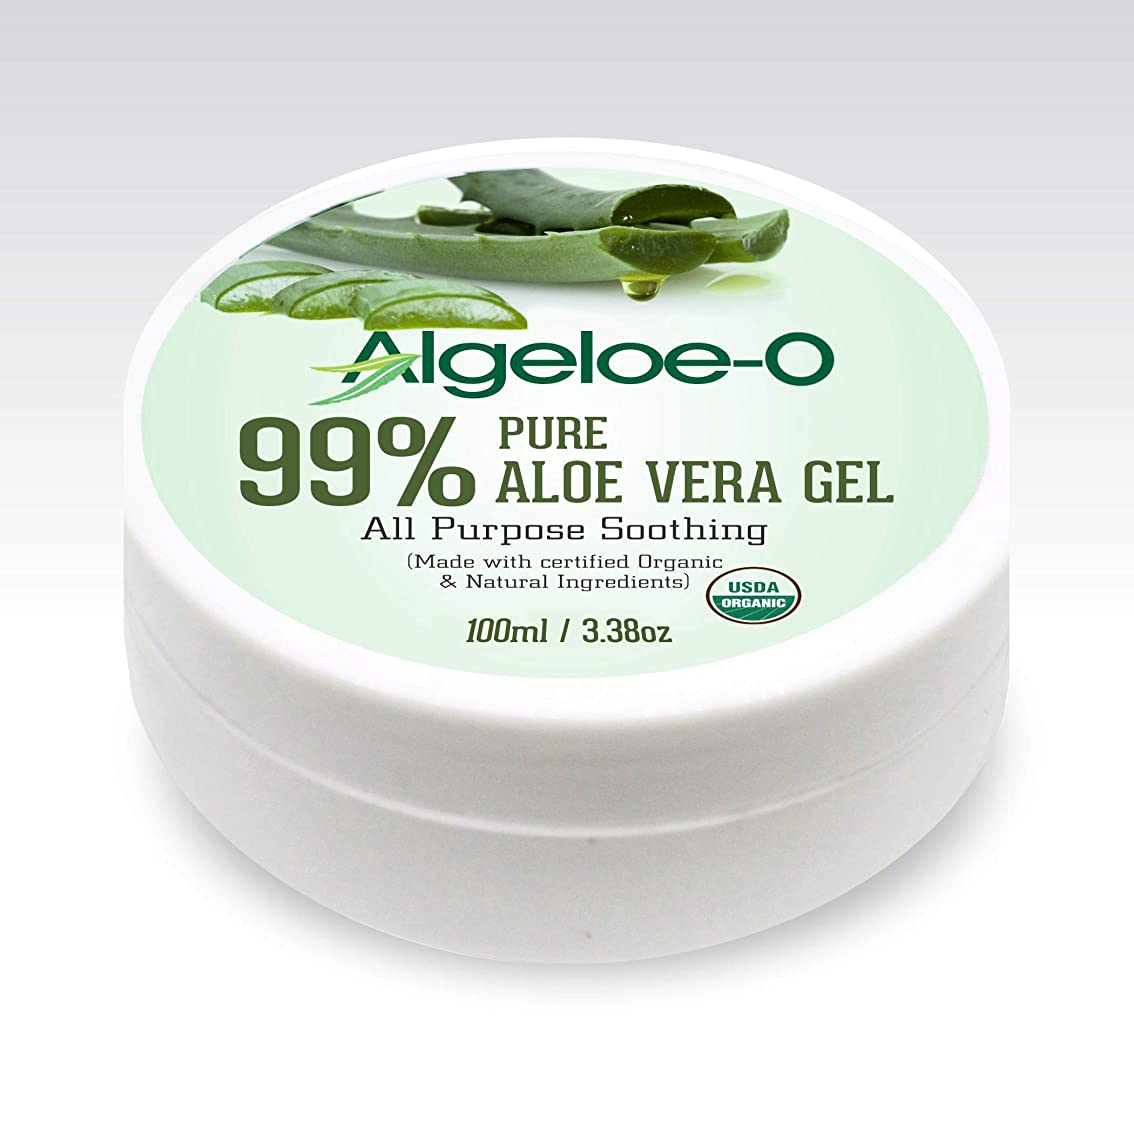 Algeloe-O? Organic Aloe Vera Gel 99% Pure Natural made with USDA Certified Aloe Vera Powder Paraben, sulfate free with no added color 100ml/3.38oz.